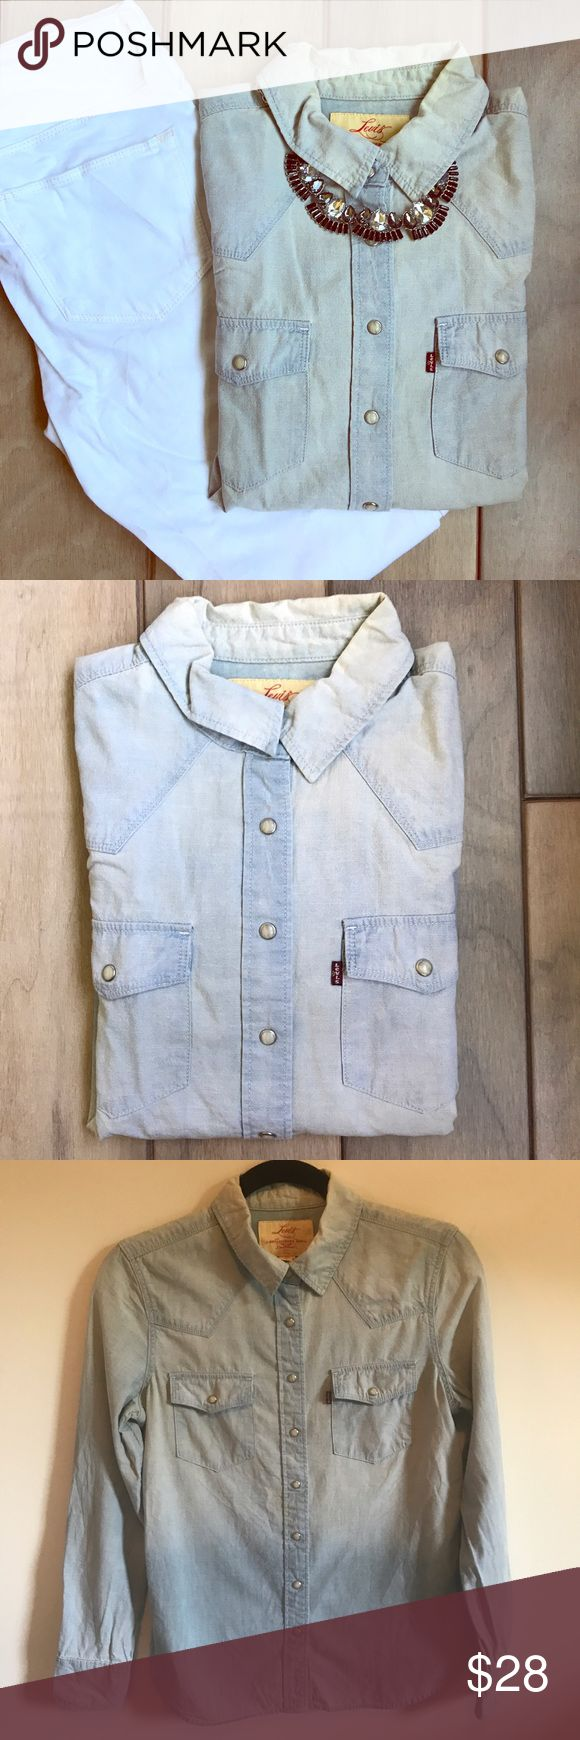 Selling this UO Levi's Western Chambray Pearl Button Shirt on Poshmark! My username is: sarkerrigan. #shopmycloset #poshmark #fashion #shopping #style #forsale #Urban Outfitters #Tops